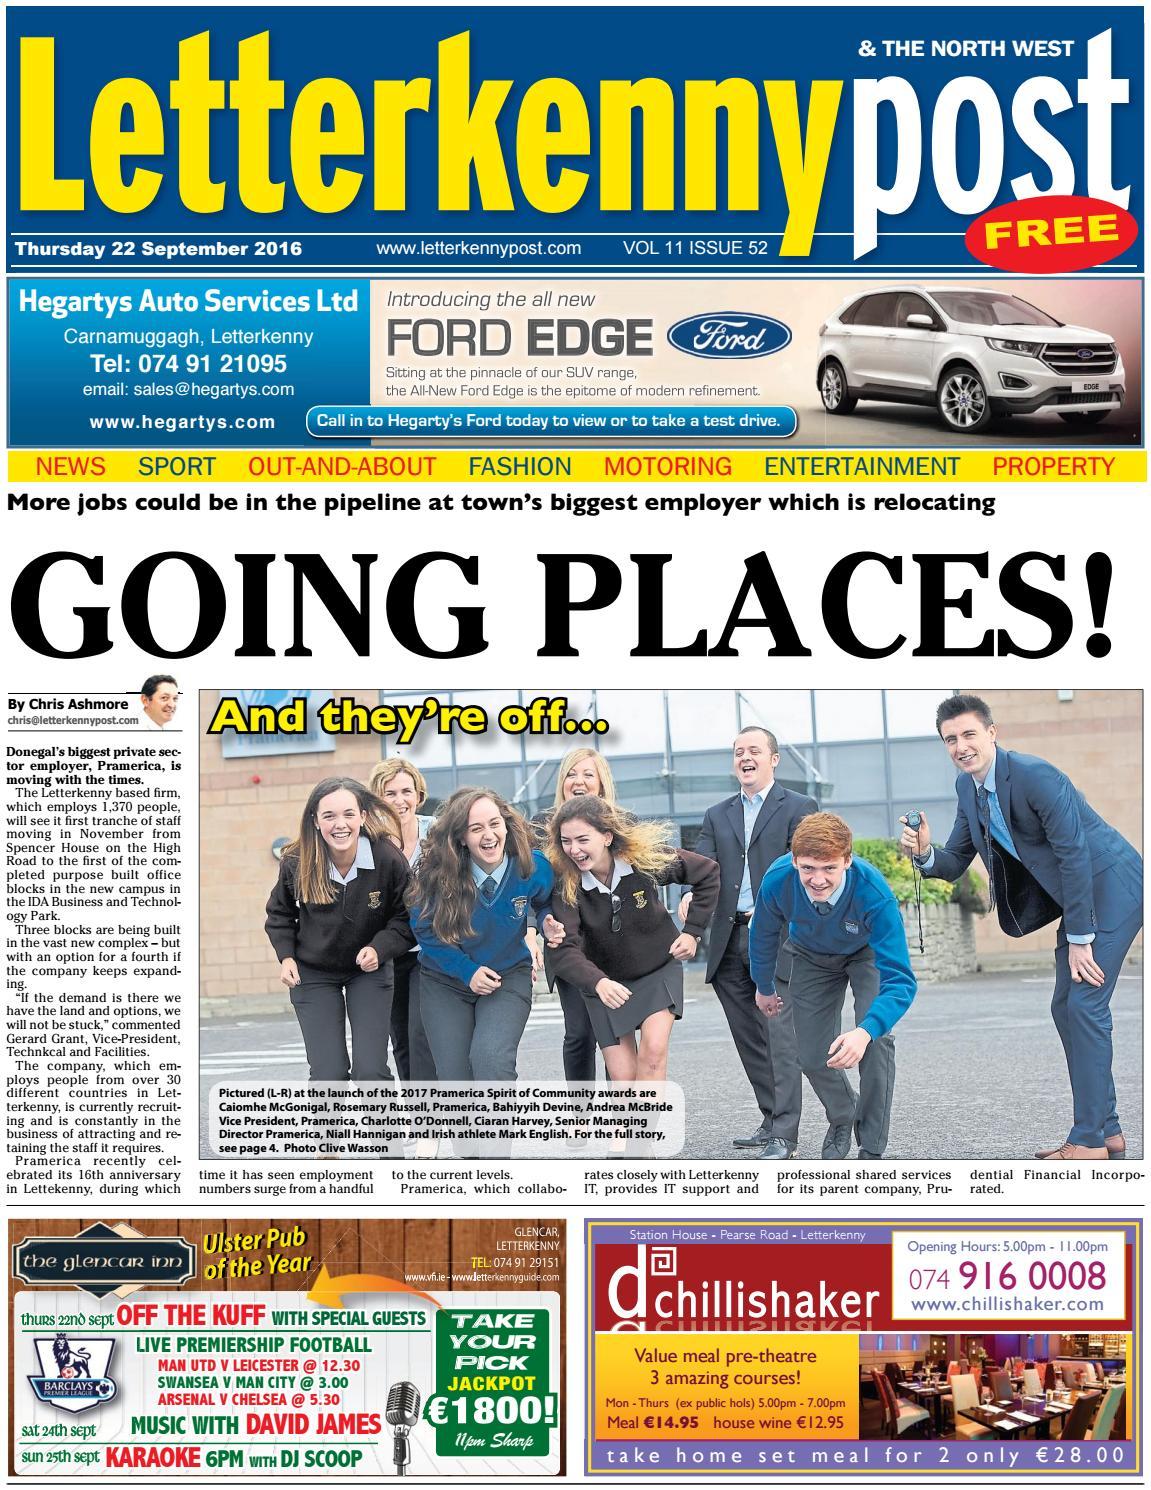 Letterkenny Post 22 09 16 By River Media Newspapers Issuu